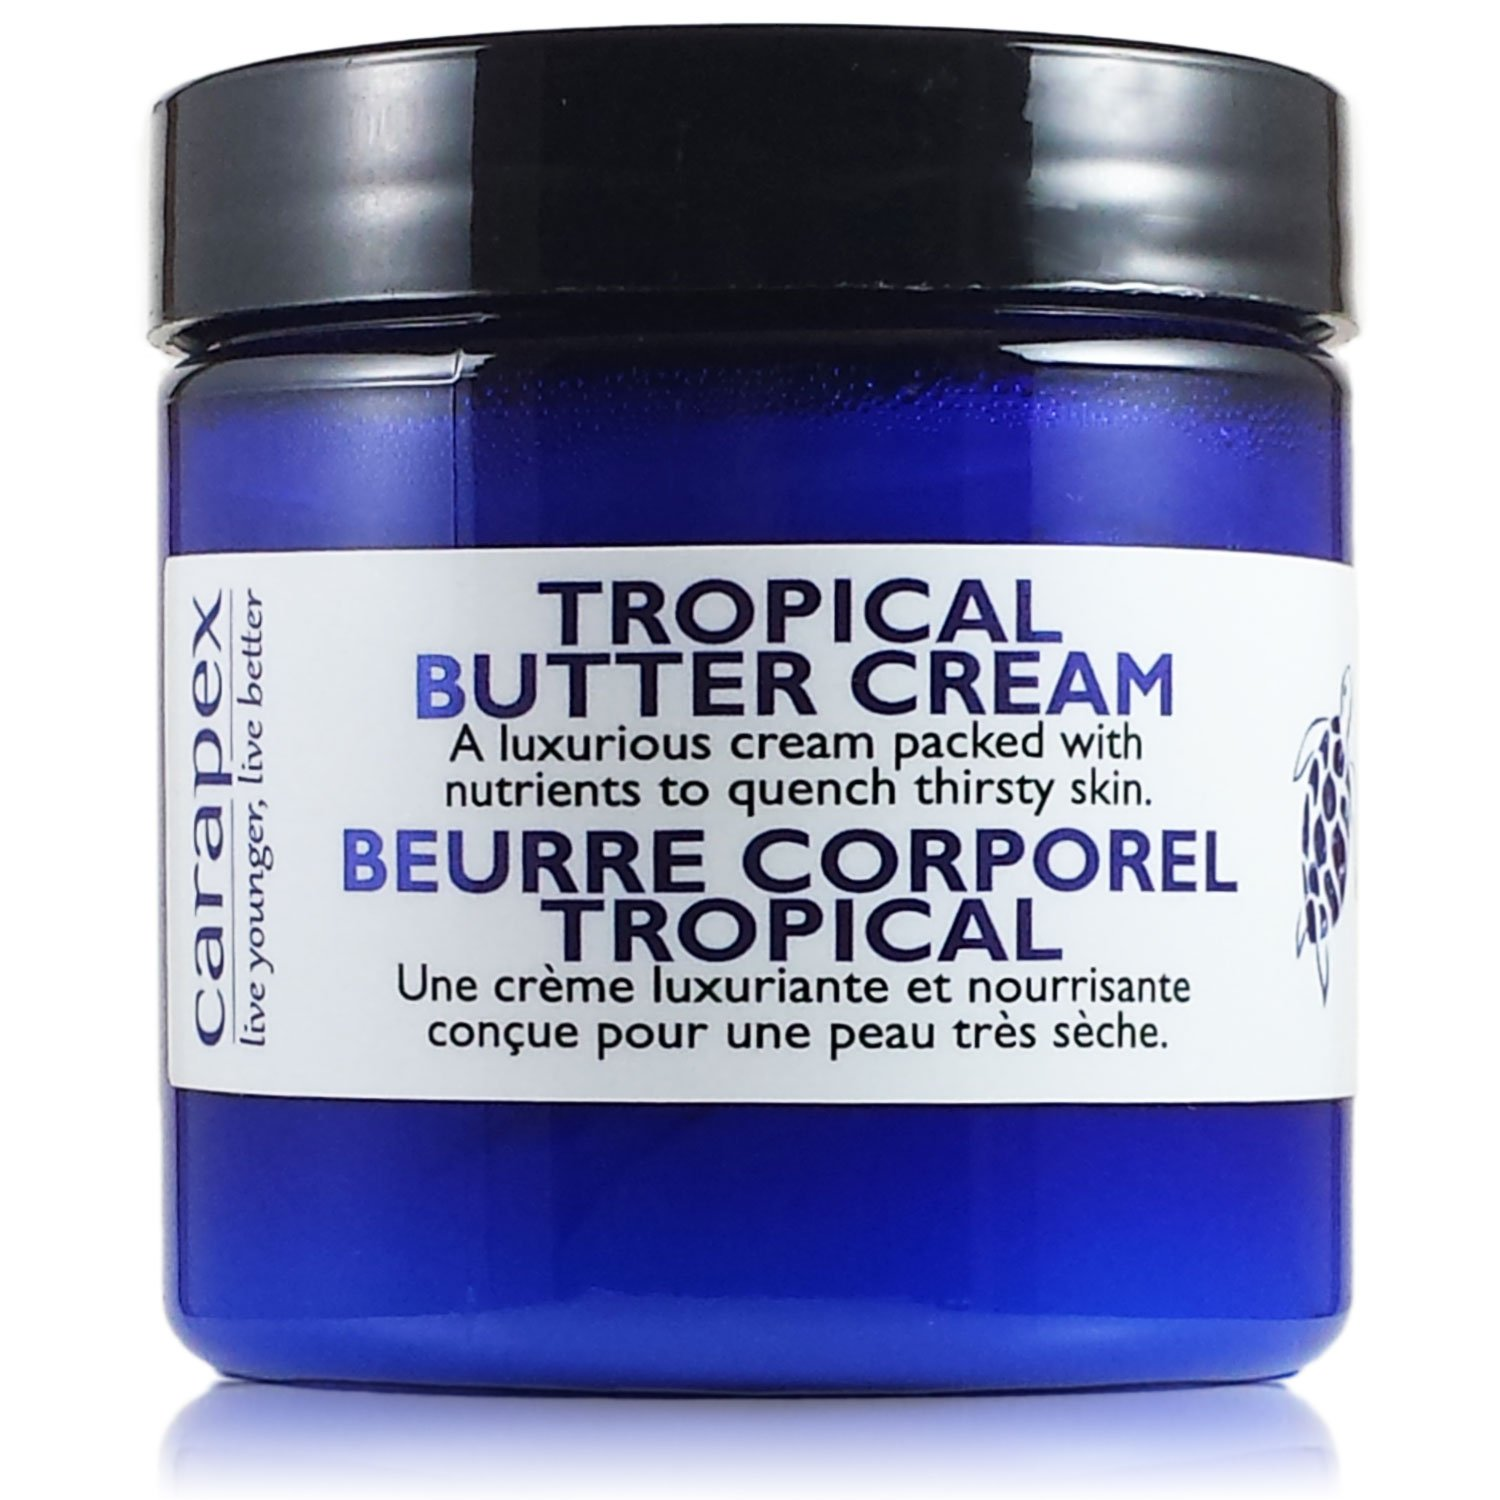 Carapex Tropical Butter Cream for Dry Skin & Cracked Hands | Natural Shea Butter, Cocoa Butter, Vitamin E, Green Tea Extract | Non Greasy, Fragrance Free, 4oz